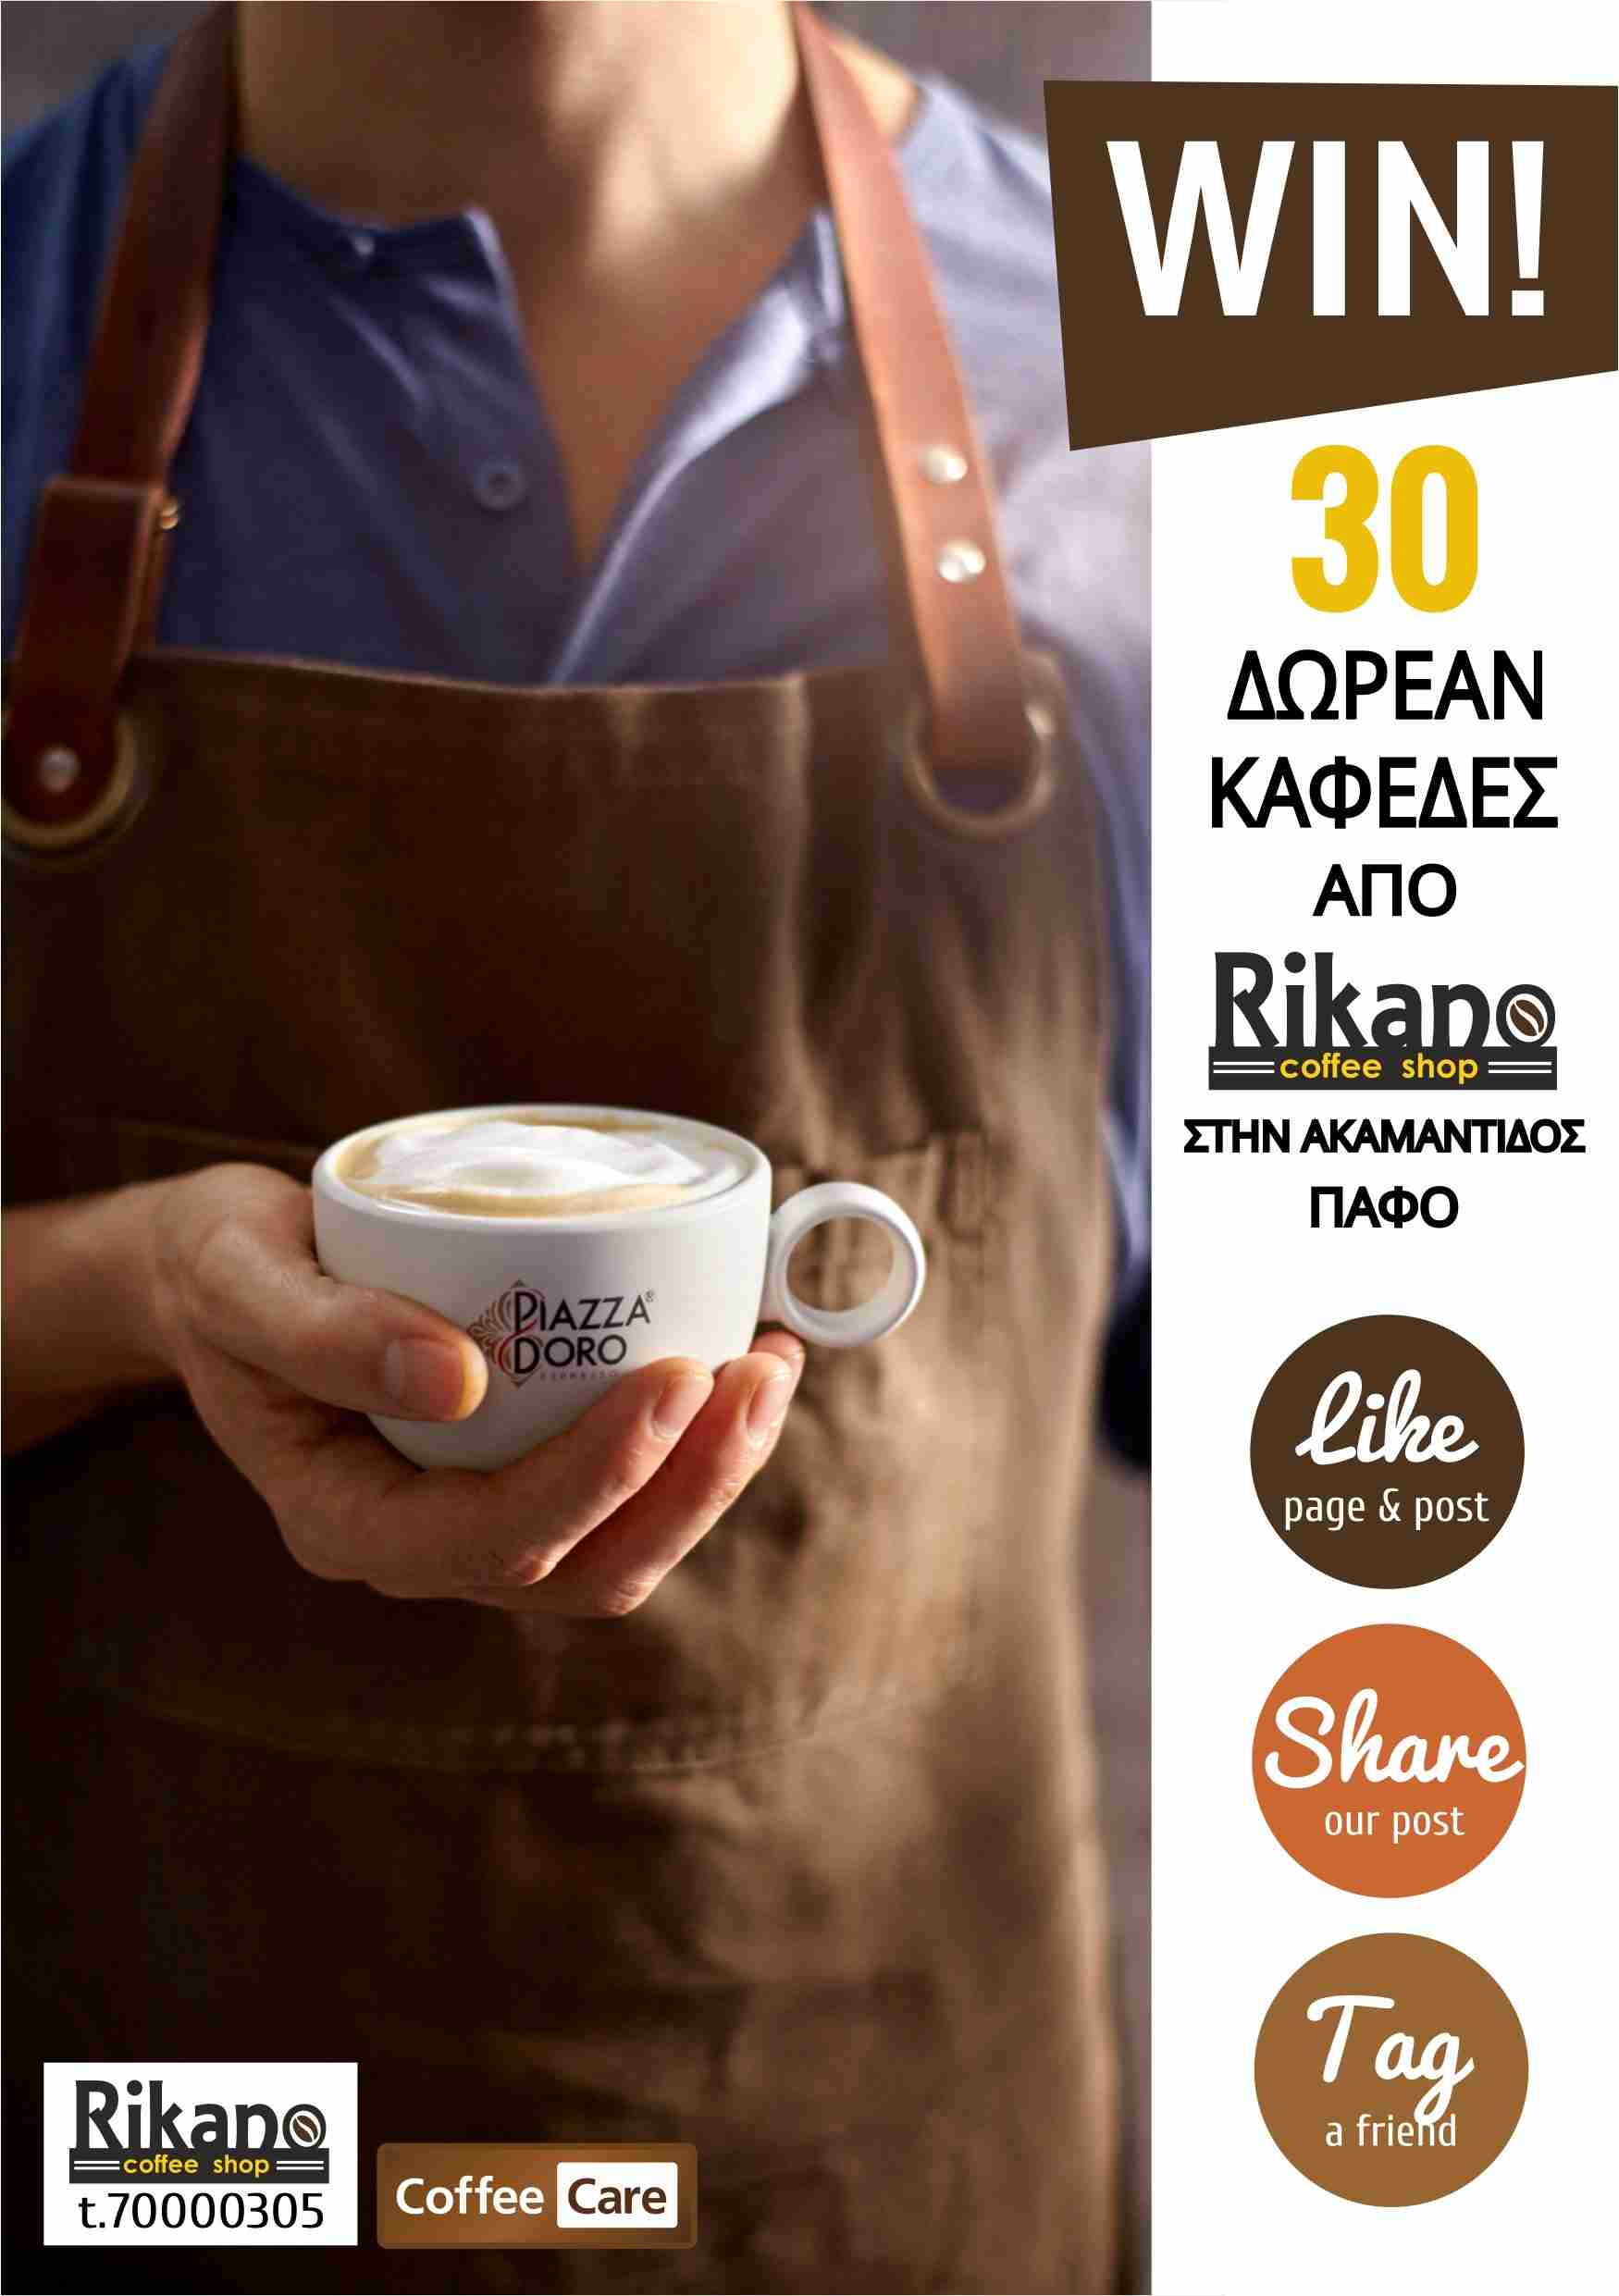 CoffeeCare-fb-competition-22-4-18